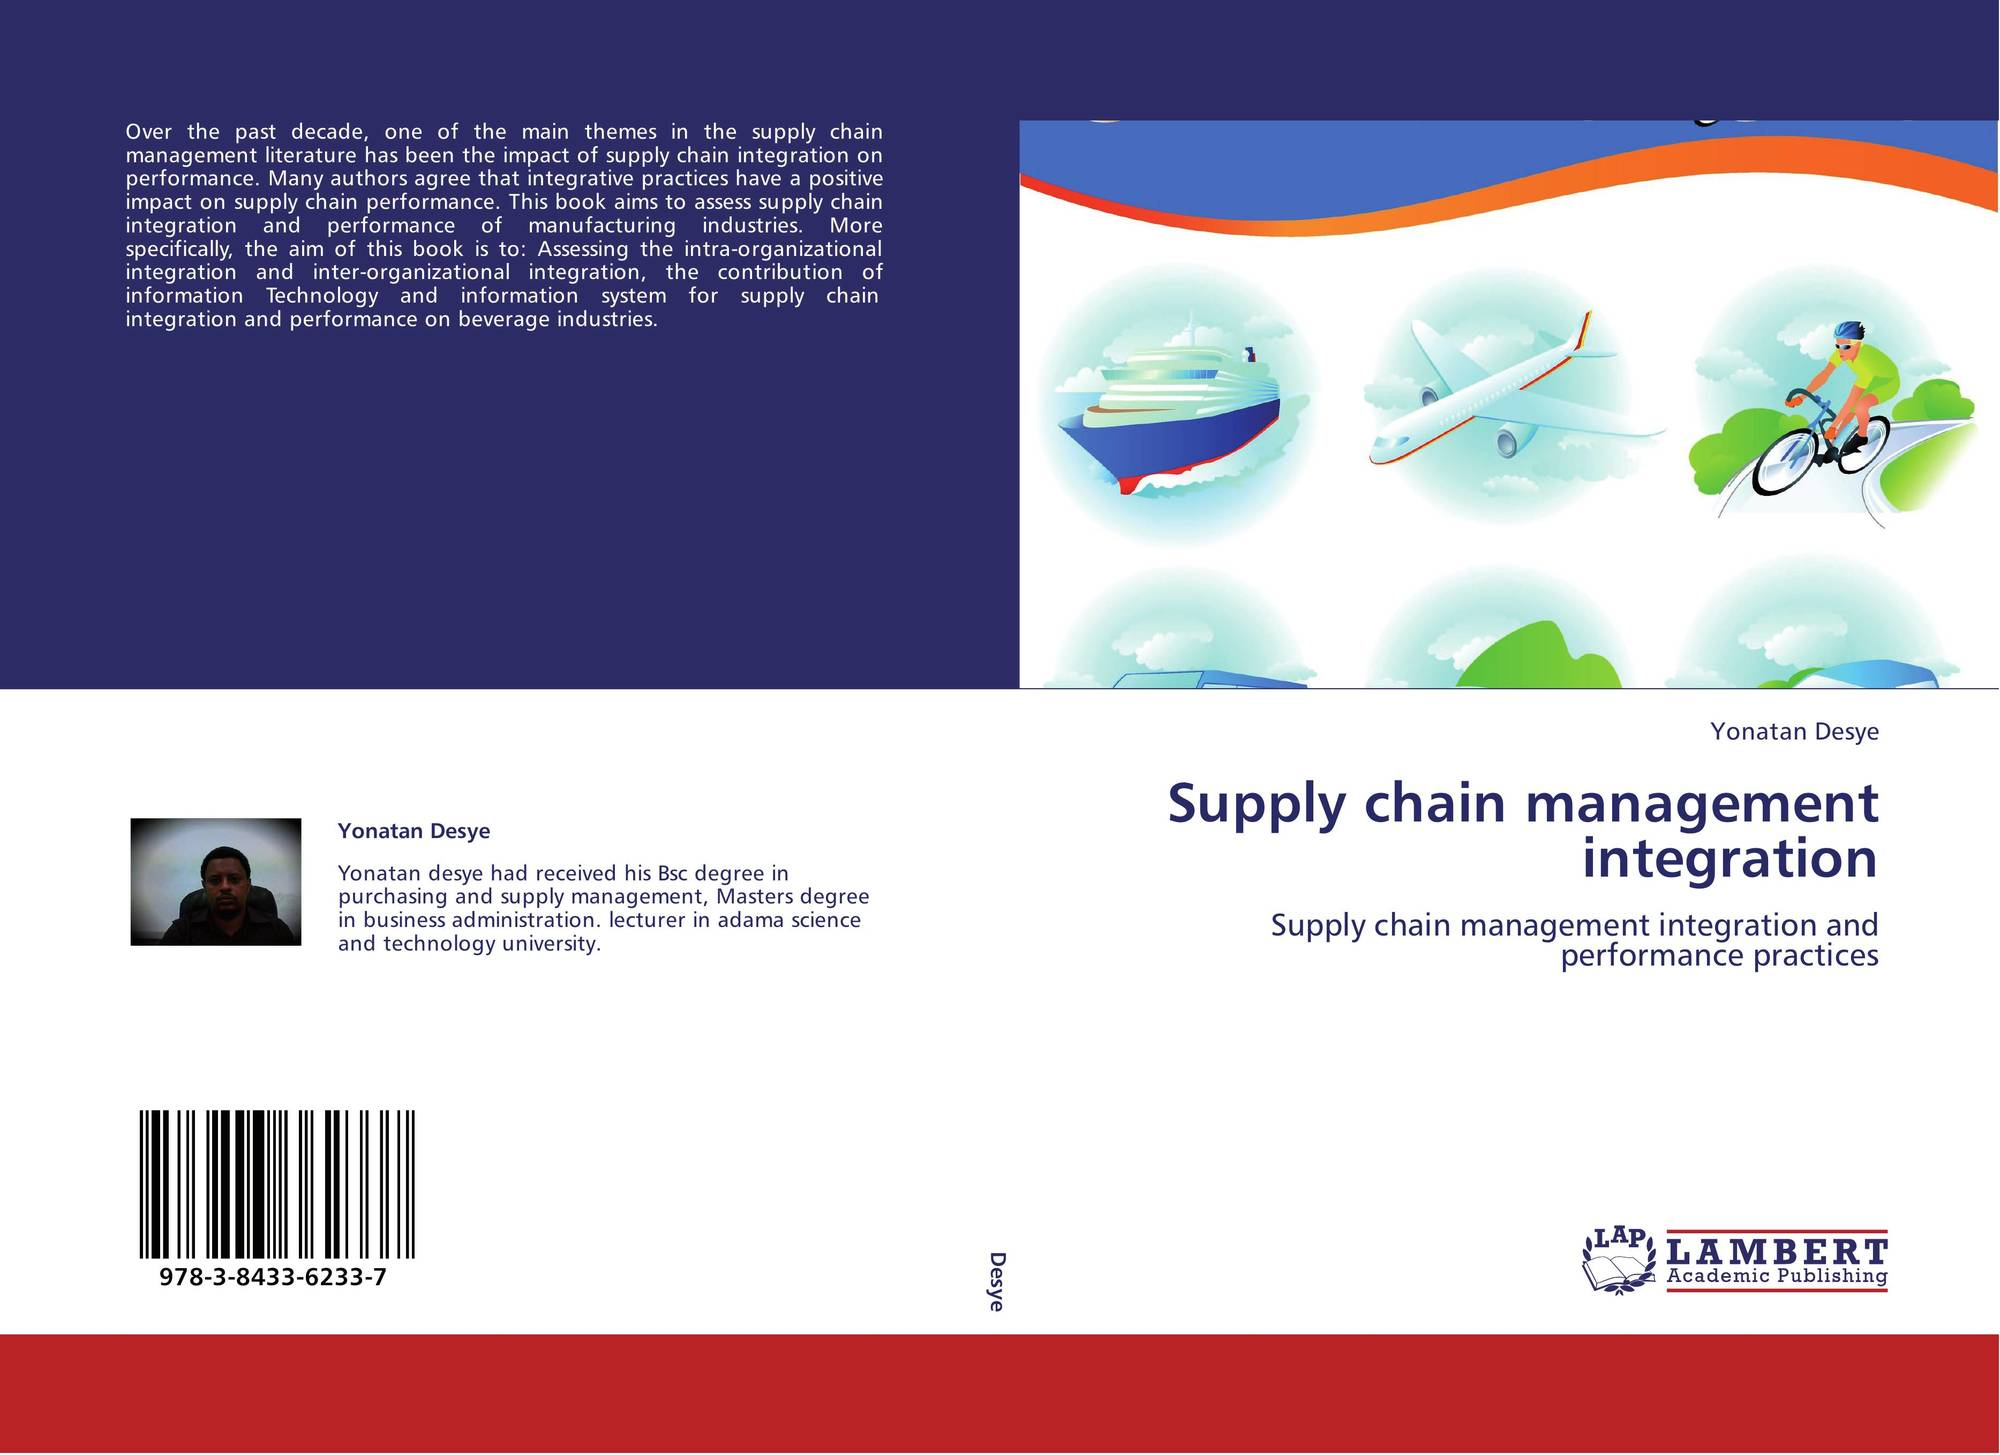 quality in seaport supply chain Integration of quality and safety management systems in ports has several  advantages the survey indicated that safety and environmental issues are a  priority.